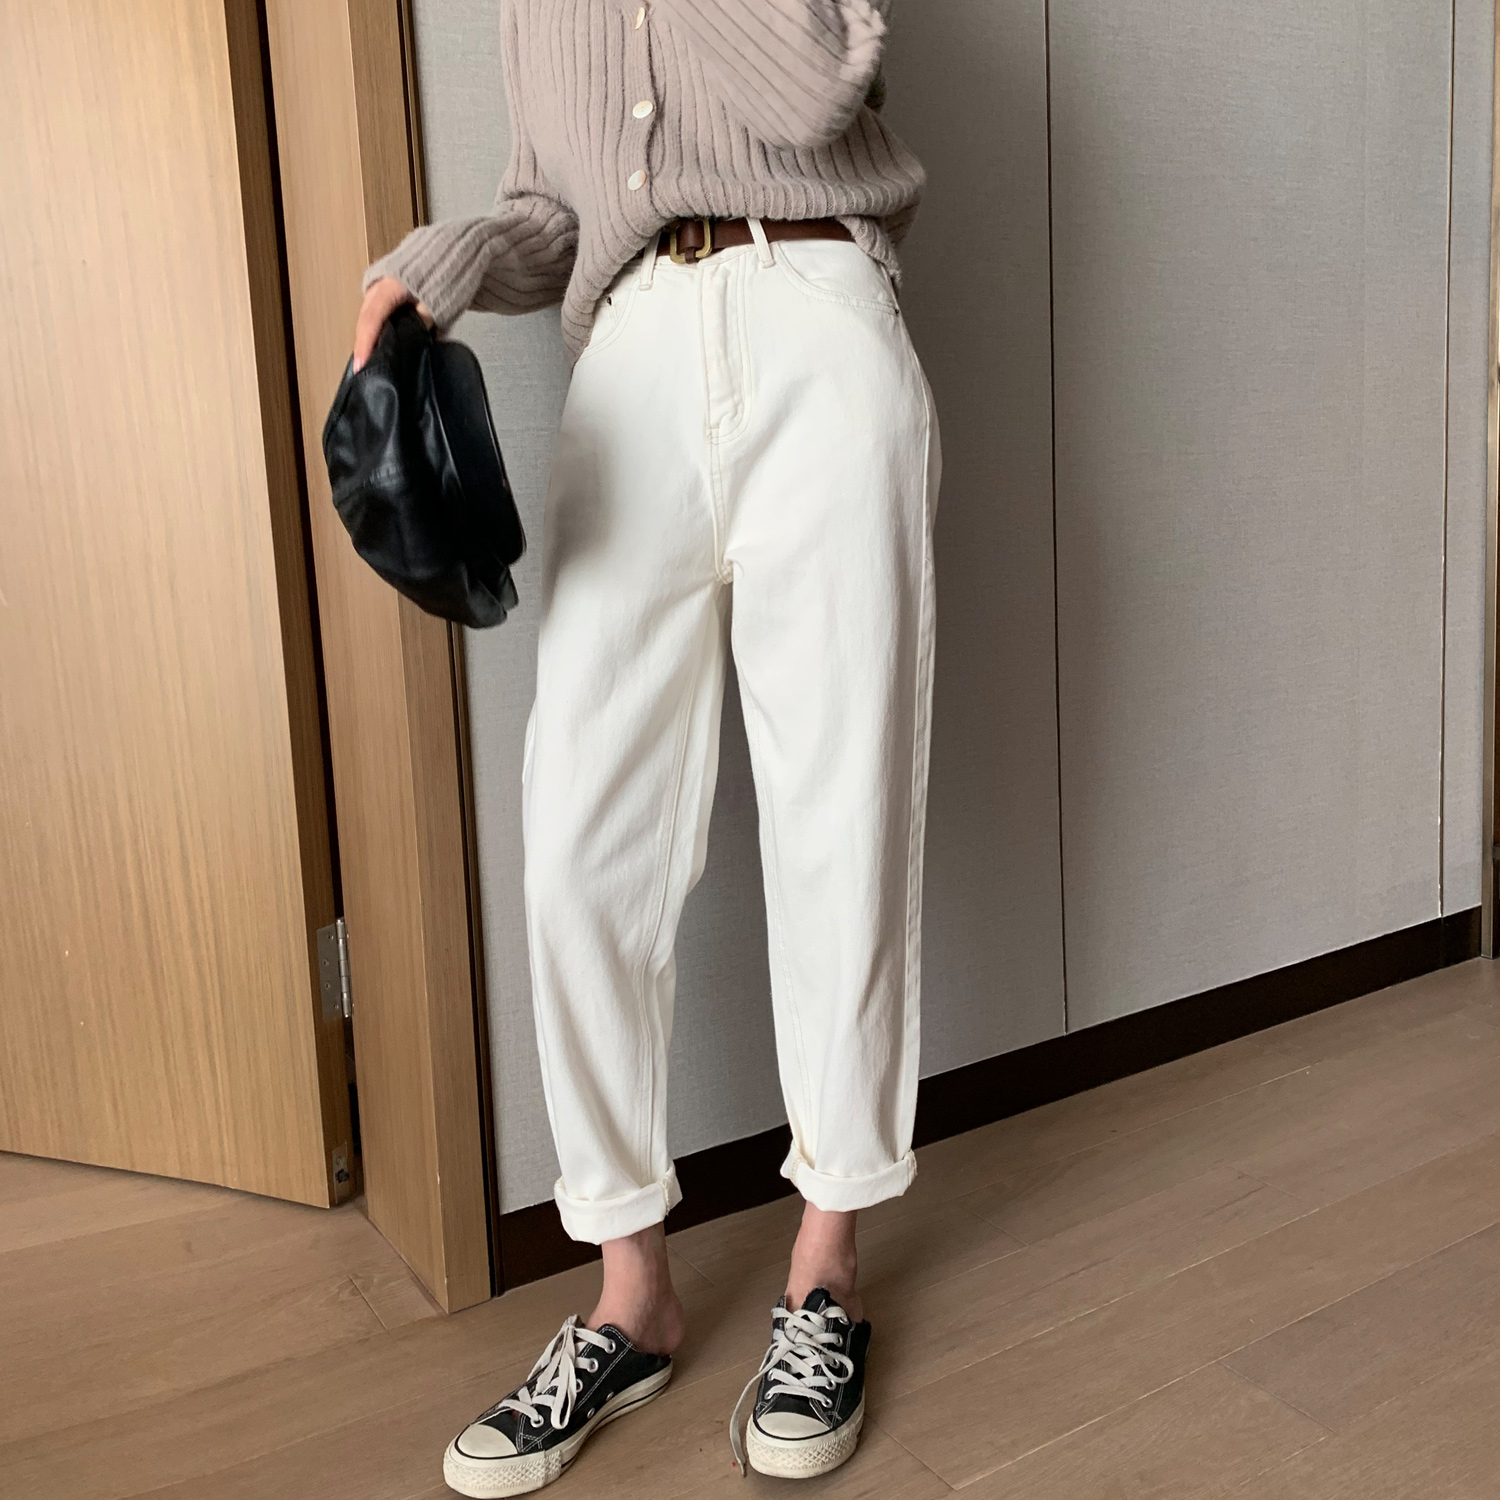 Cotton White Jeans For Women High Waist Harem Mom Jeans Spring 2020 New Jeans Denim Pants